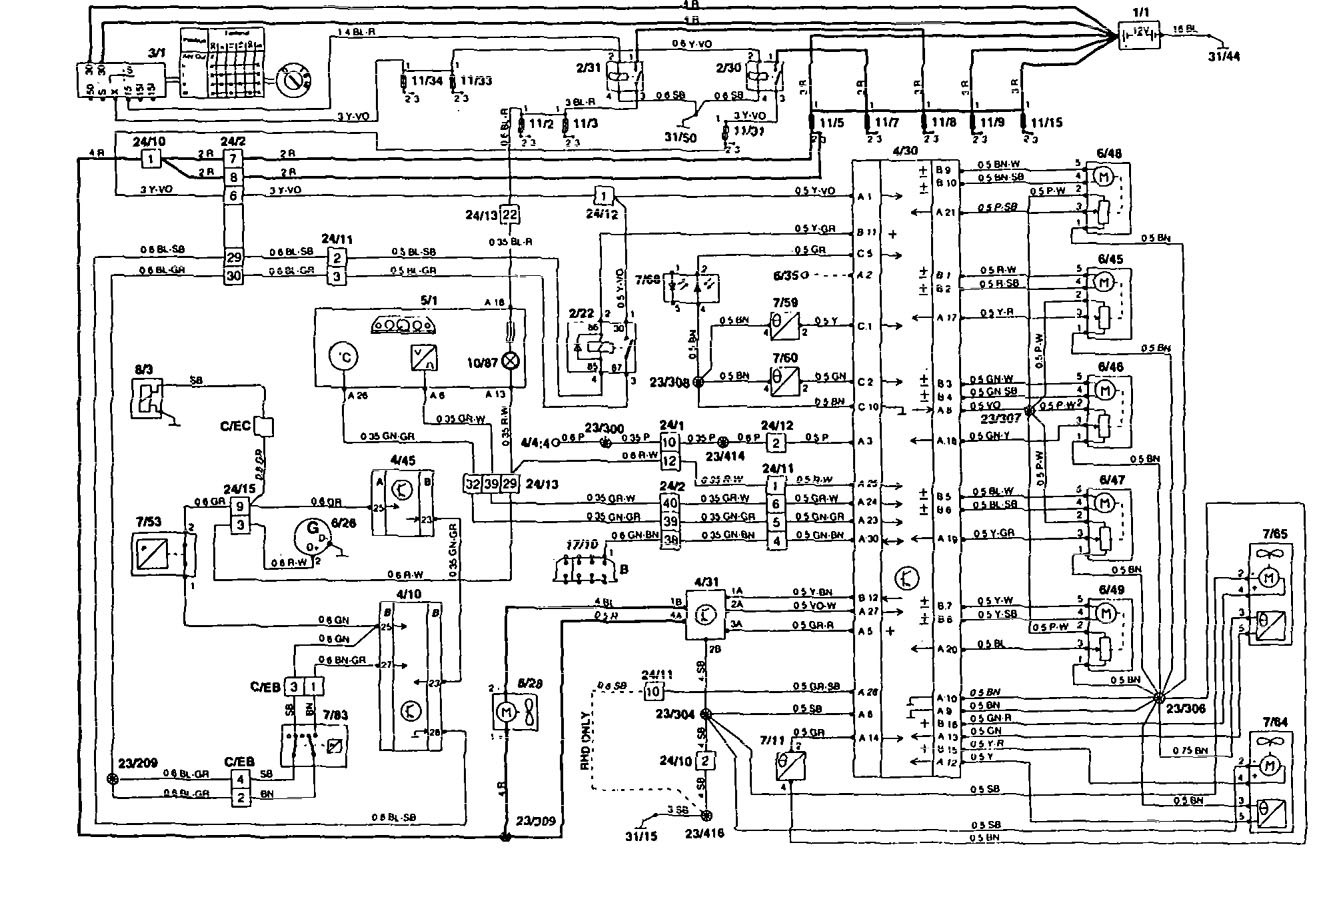 1997 volvo 850 stereo wiring diagram with Volvo 850 Wiring Diagram on 97 Buick Lesabre Fuse Box Diagram as well 97 Nissan 200sx Radio Wiring Diagram likewise Geo Metro Wiring Diagram Besides 1997 besides Volvo 850 Wiring Diagram besides Volvo 940 Wiring Diagram 1997.